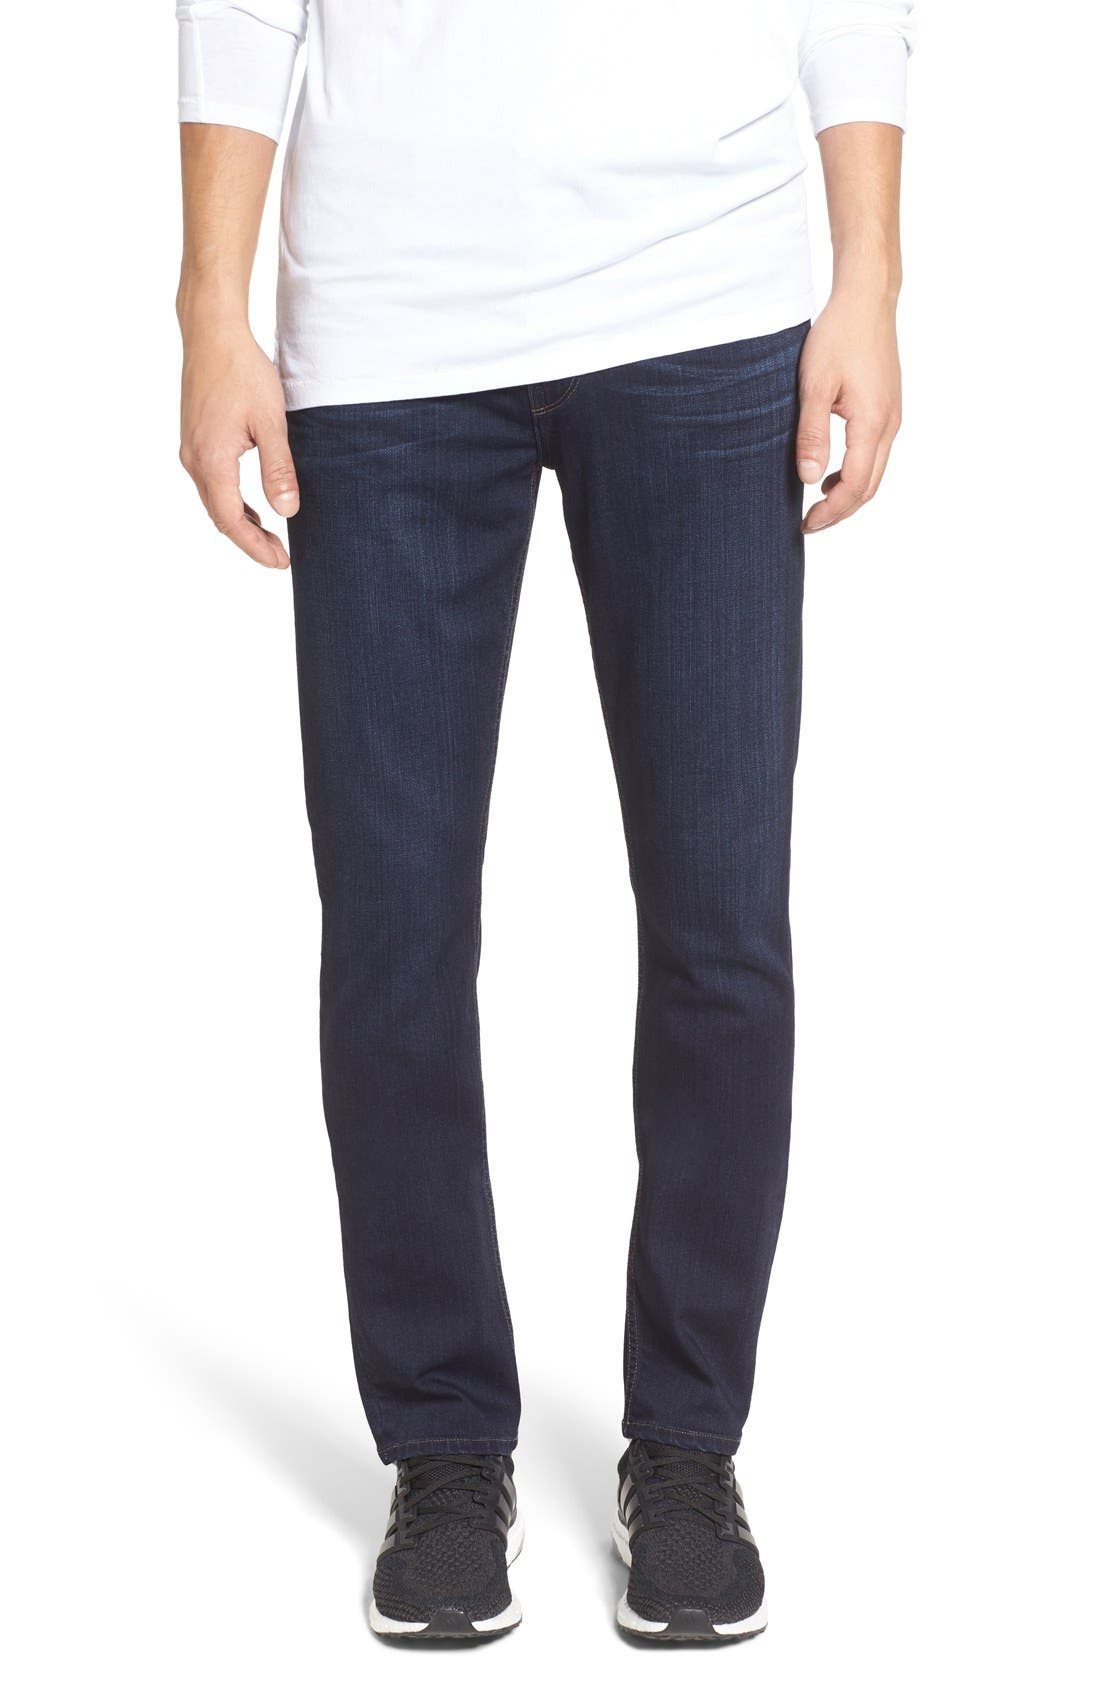 Transcend – Lennox Slim Fit Jeans,                         Main,                         color, RUSS BLUE